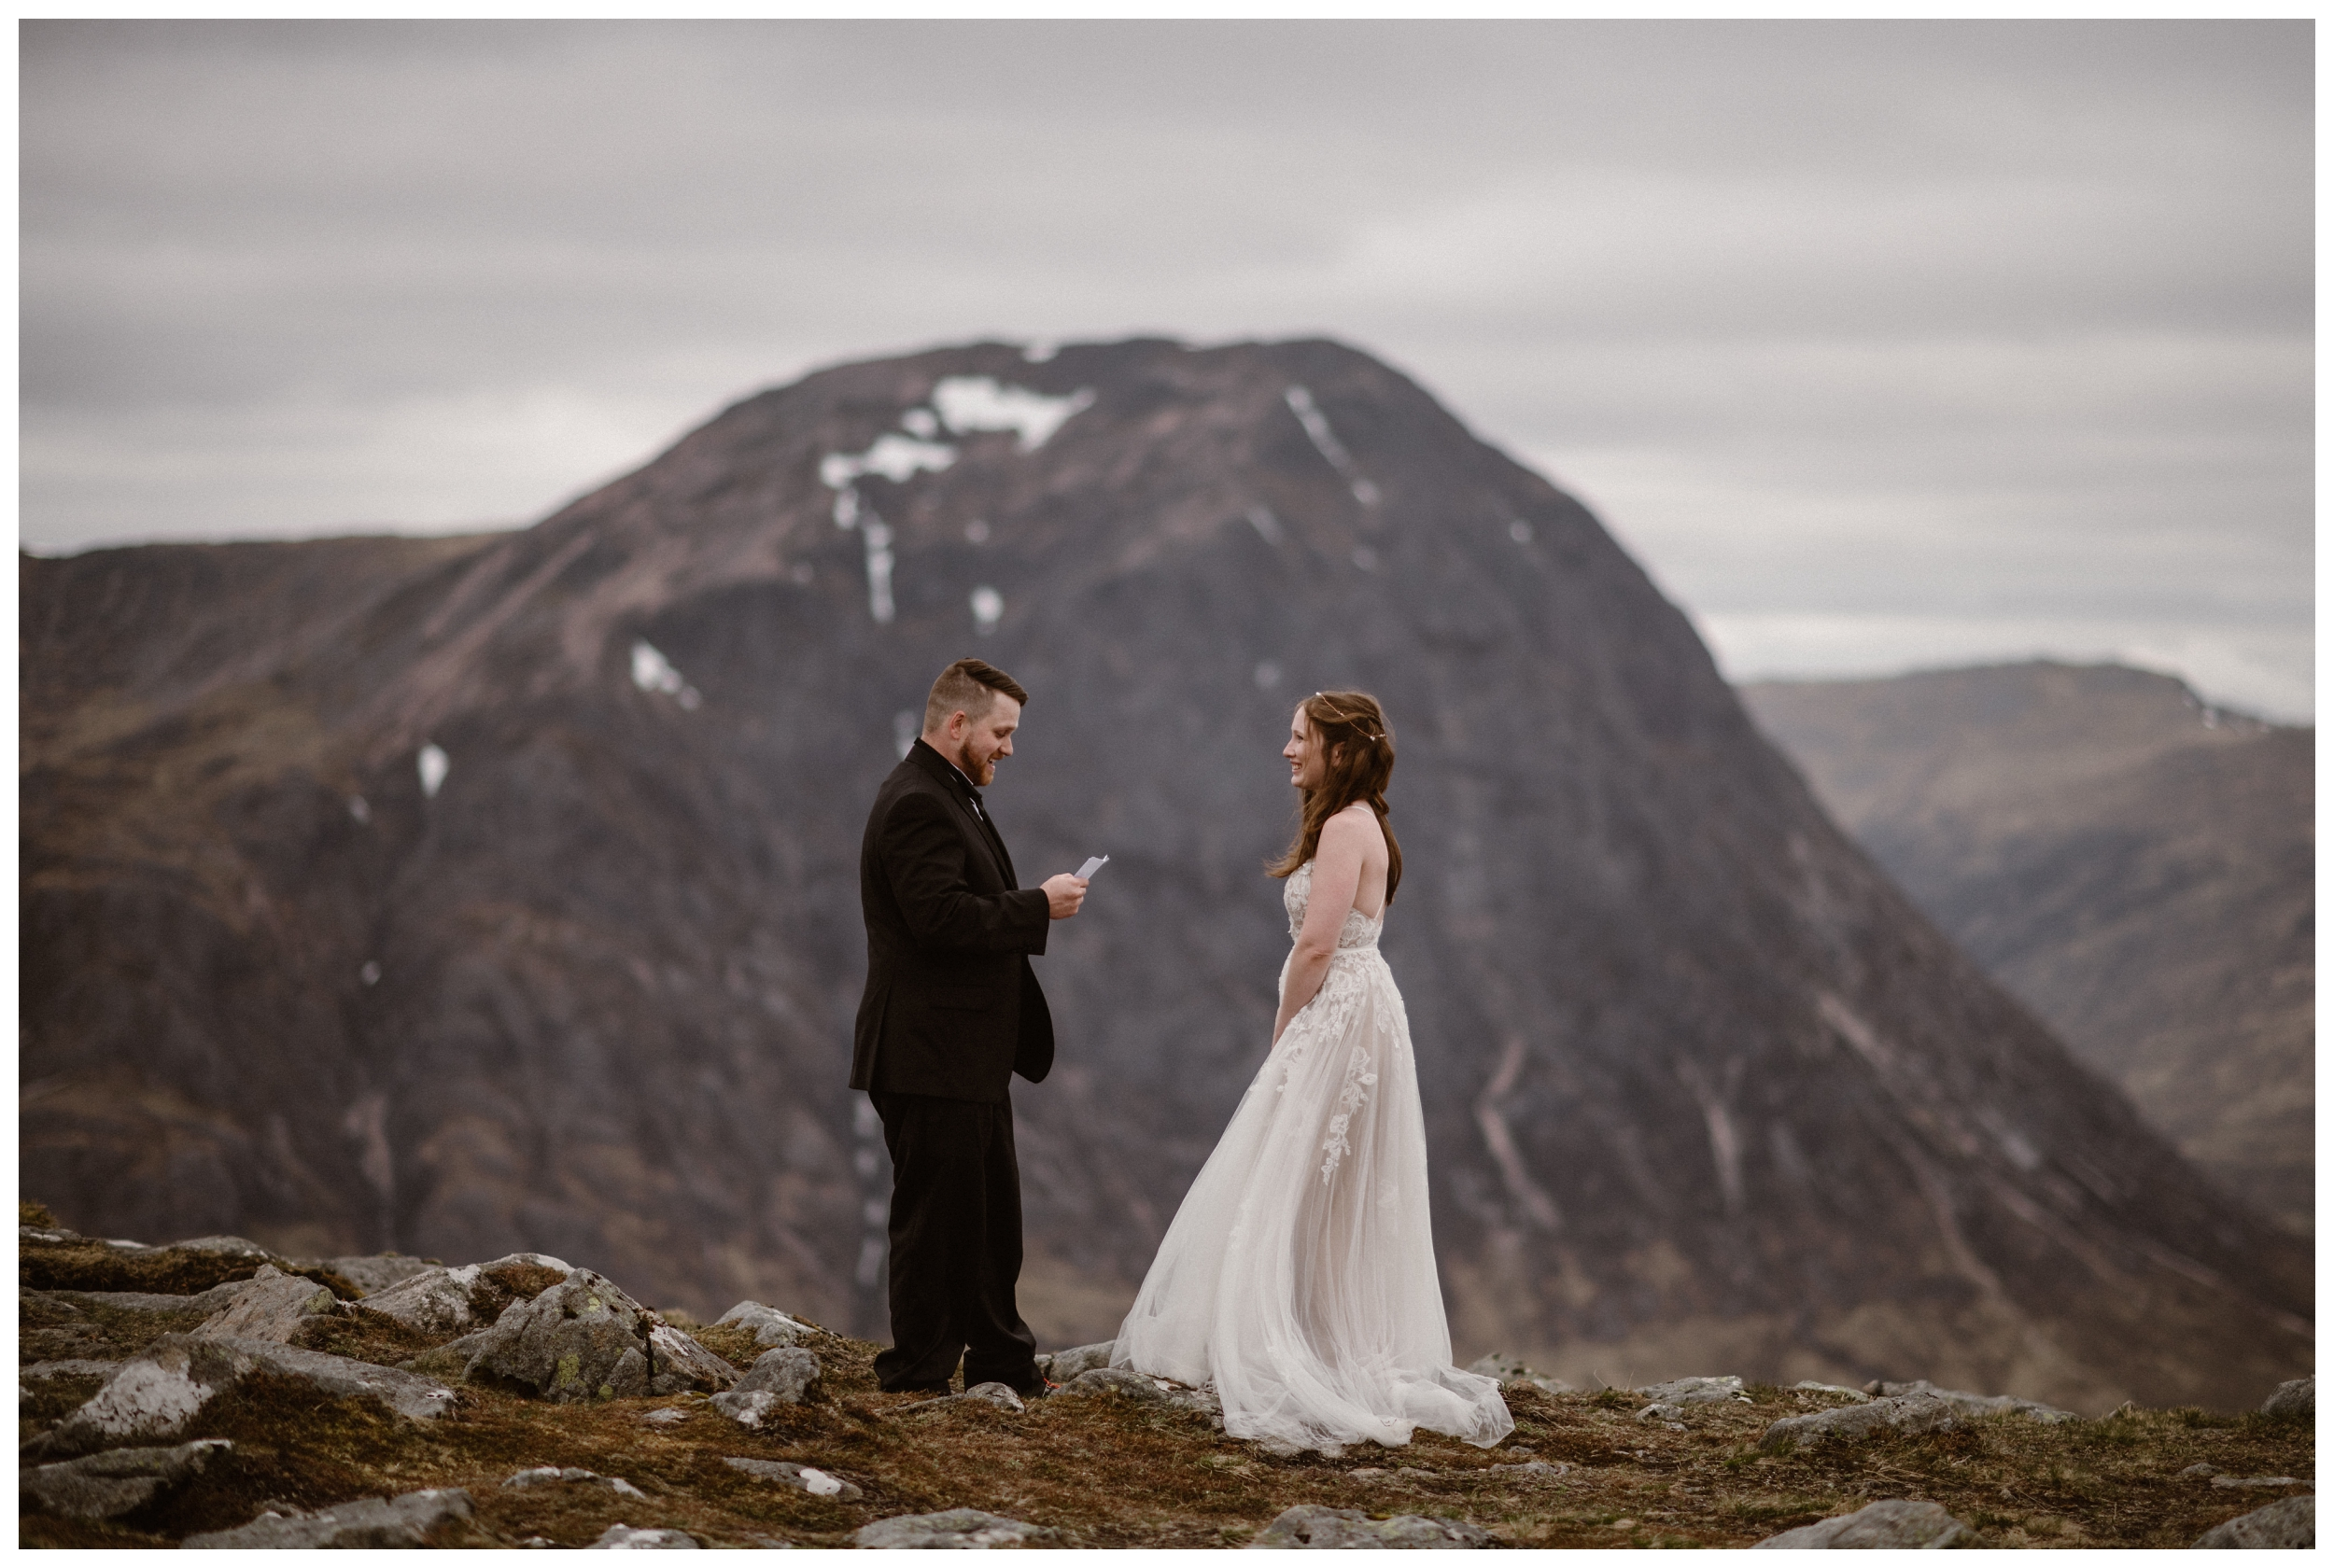 Elissa and Daniel chose a secluded, private spot to say their vows during their Scottish Highland elopement outside Glencoe, Scotland. Photo by Maddie Mae, Adventure Instead.